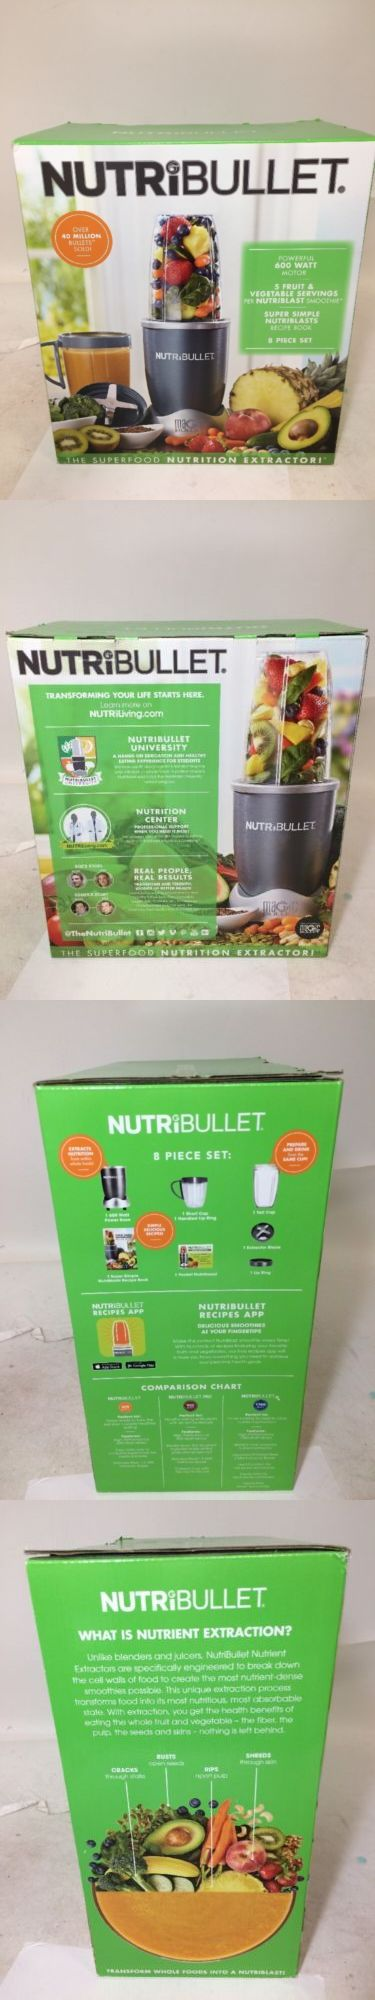 Blenders Countertop 133704: Nutribullet 600W Nbr0801 8Pcs Extractor And Blender Set Freeship, Free Ship -> BUY IT NOW ONLY: $53.89 on eBay!